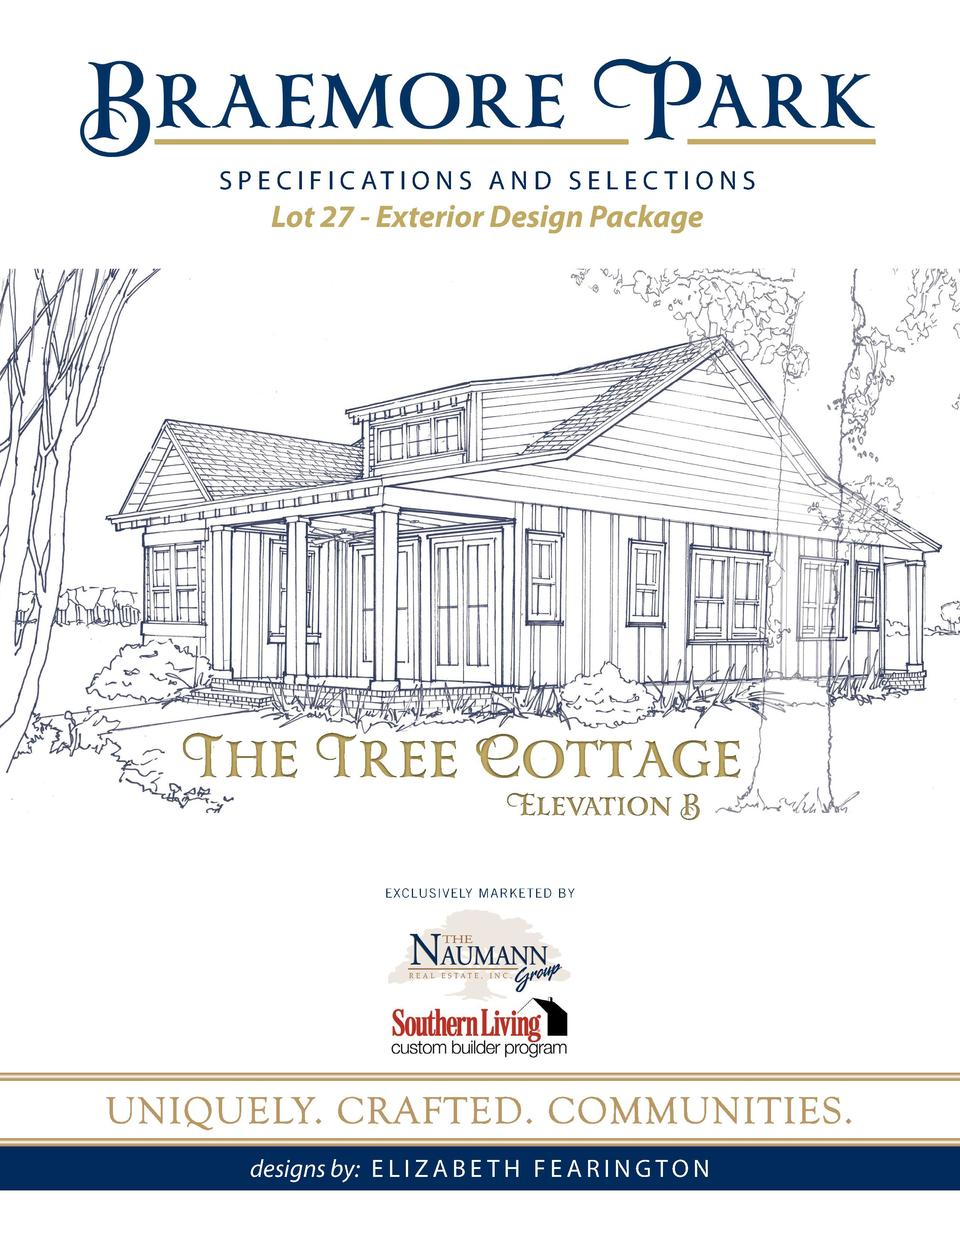 S P E C I F I C AT I O N S A N D S E L E C T I O N S  Lot 27 - Exterior Design Package  The Tree Cottage Elevation B  EXCL...